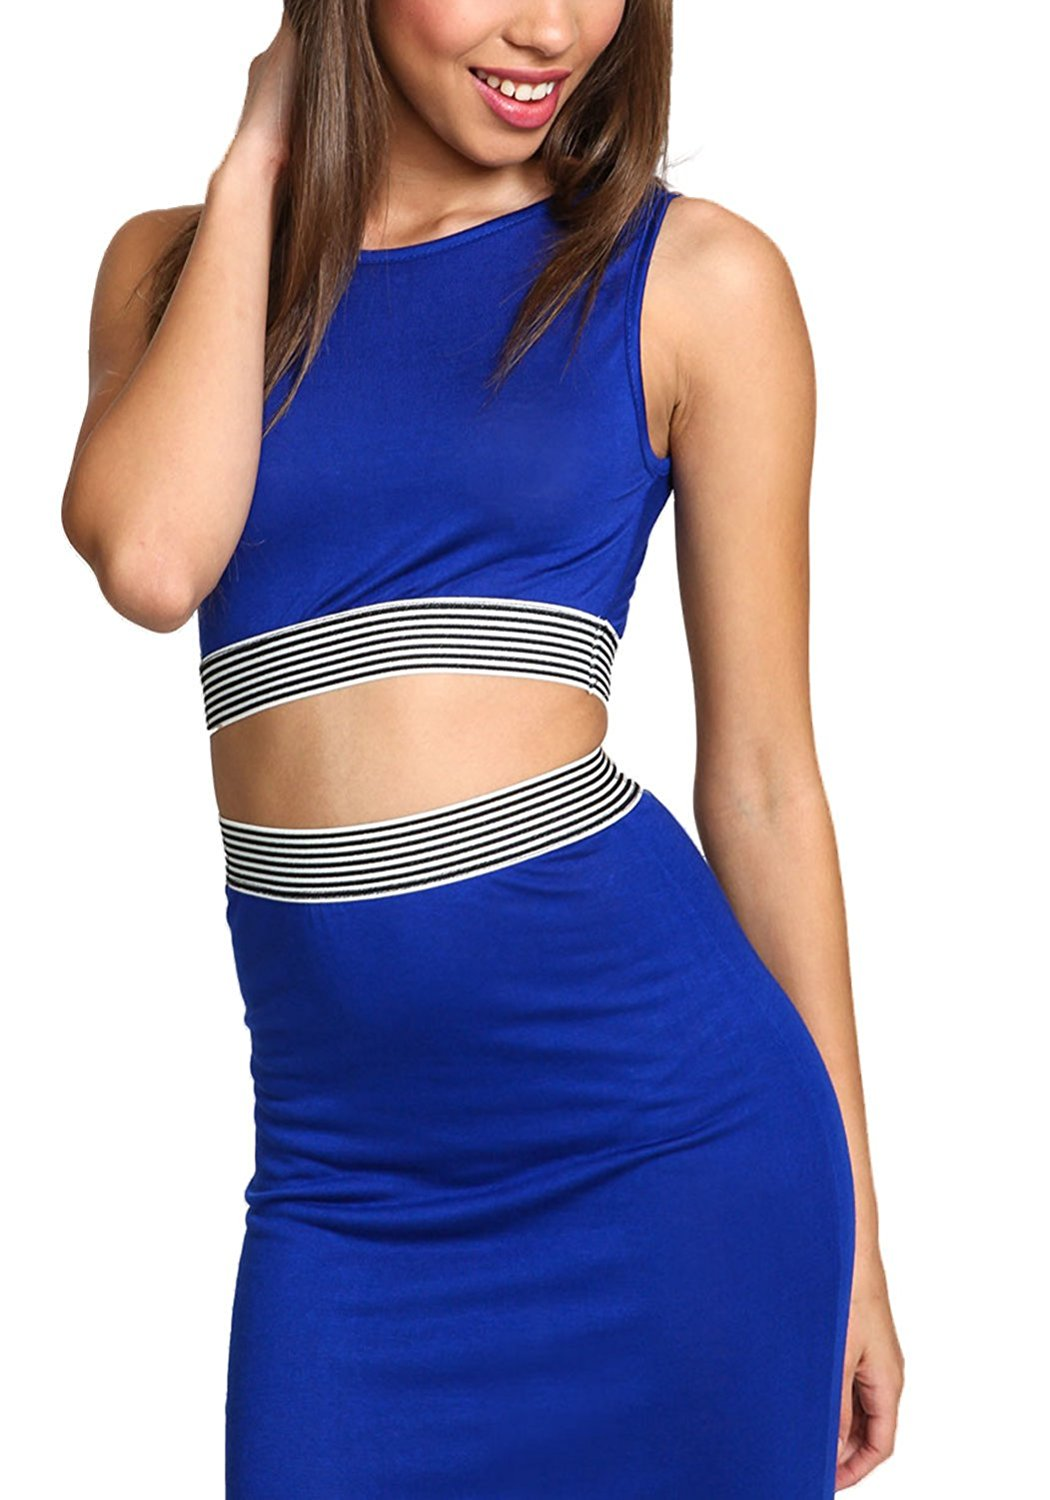 32d74ae68c4 Buy TA3941 Sporty Cut Out Crop Top With Love Printed Junior's ...